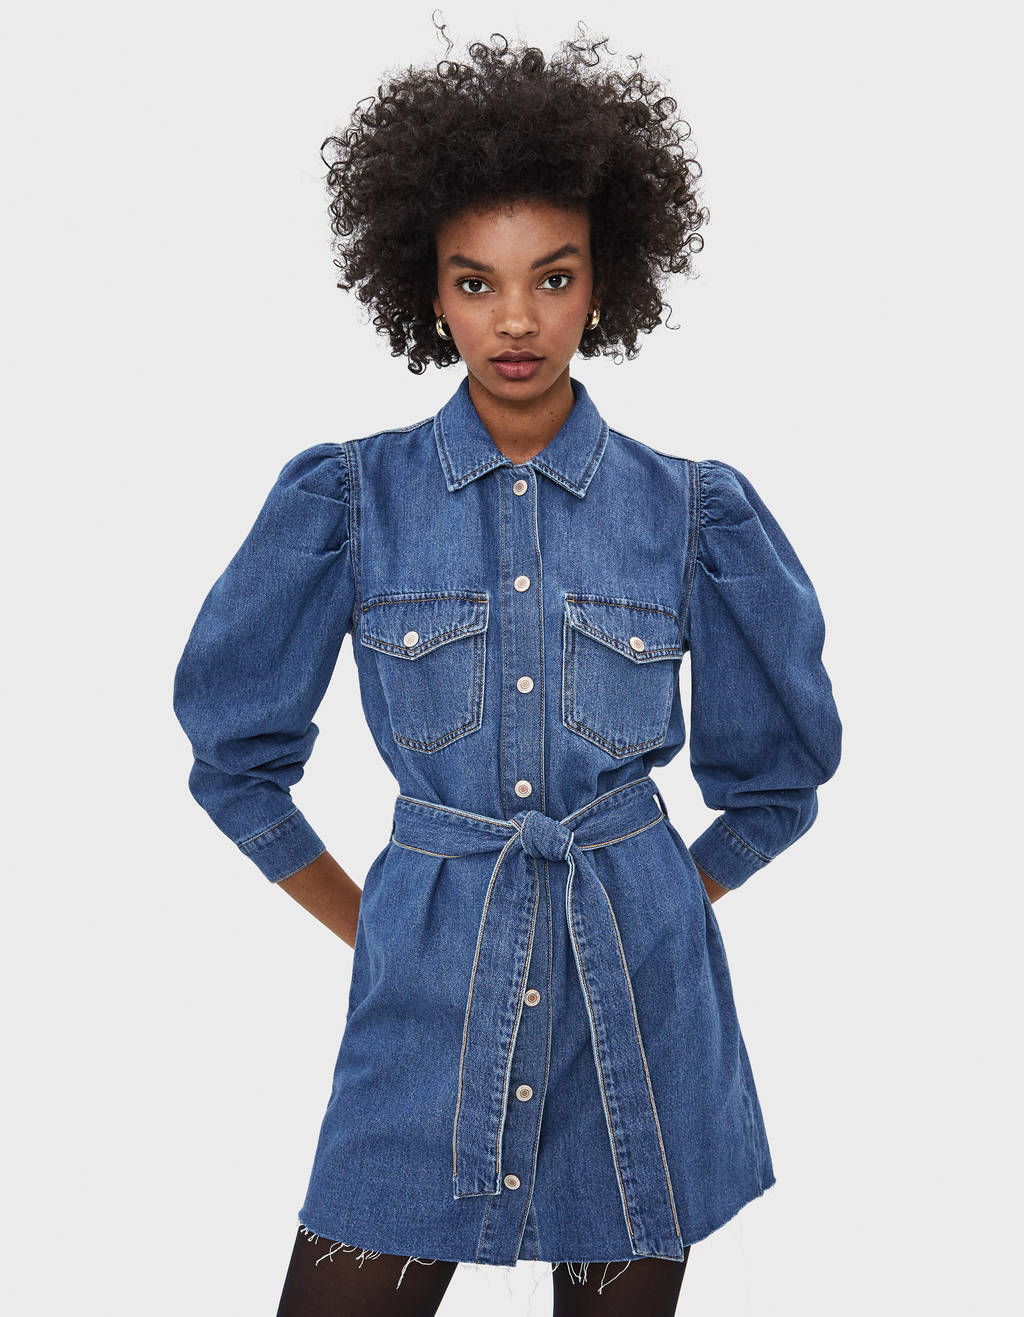 Vestito in denim